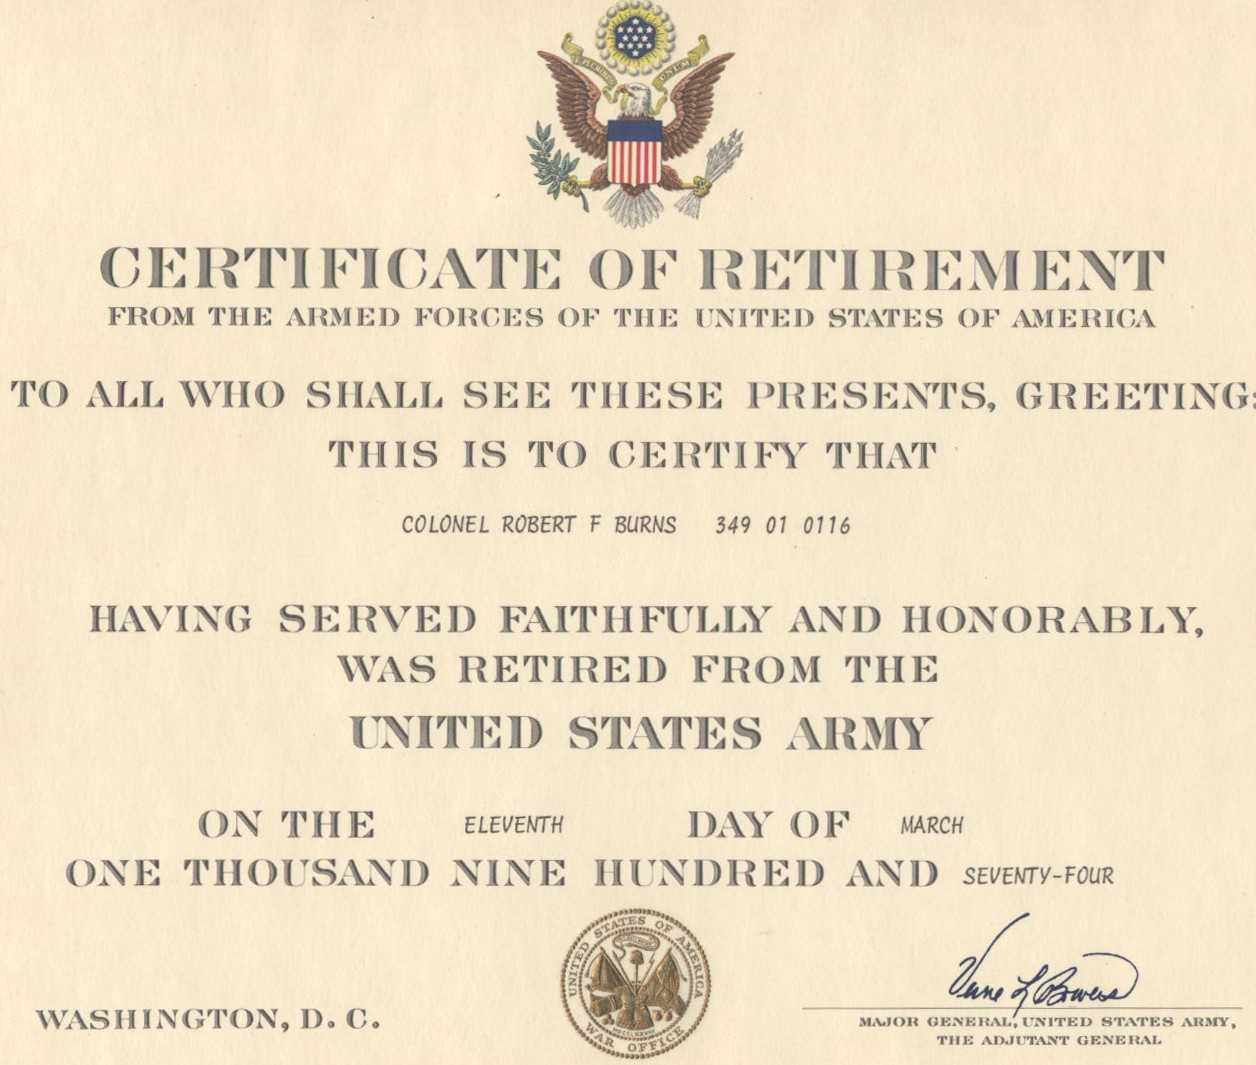 Pin On Pinterest. Sample Images Frompo. . Insanity Within Retirement Certificate Template